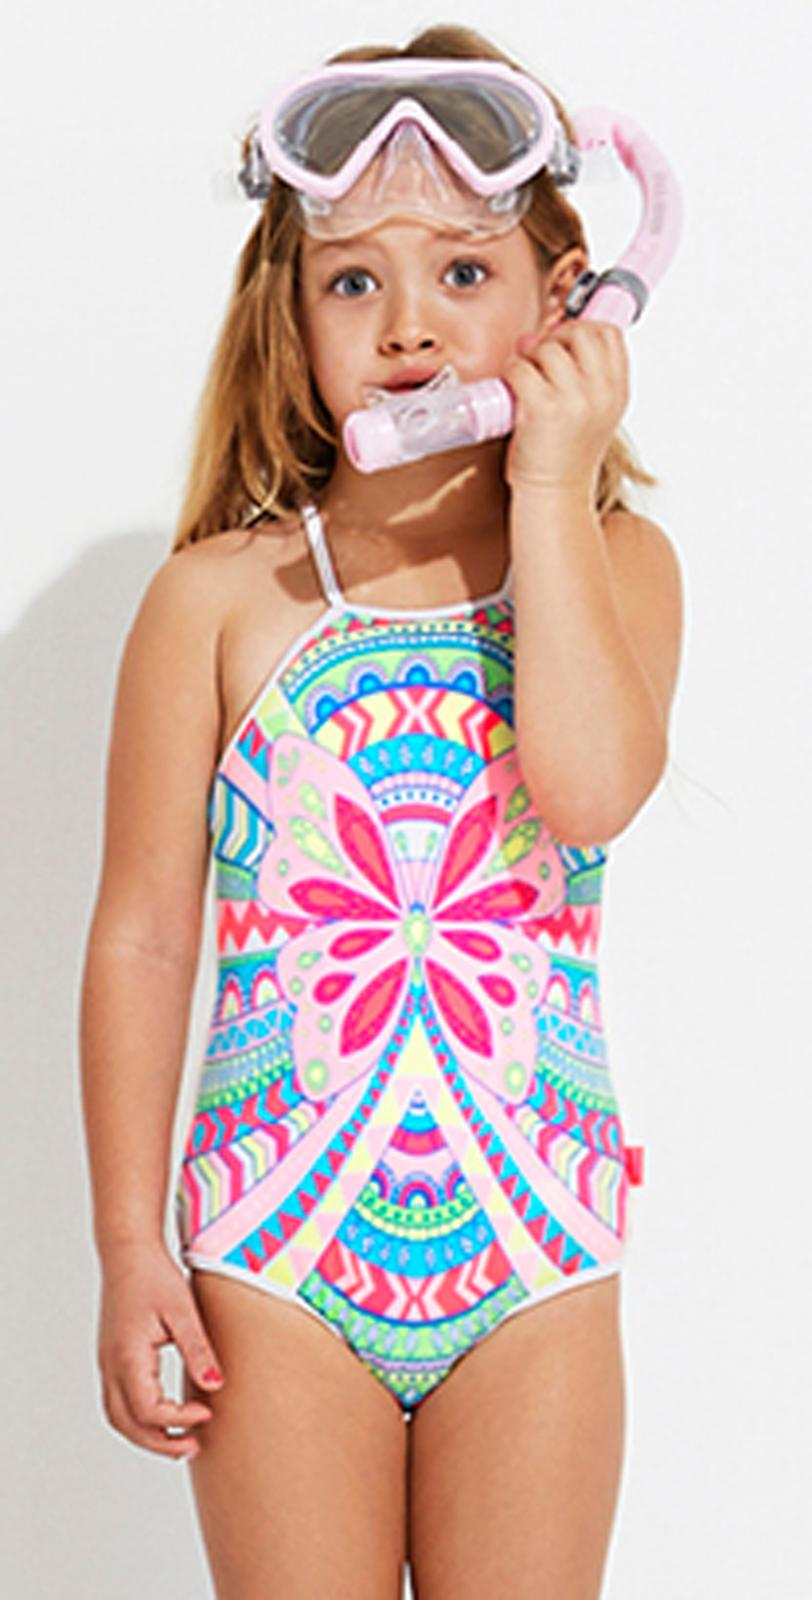 Seafolly-one-piece-KIDS15_CAMPAIGN-LOGO_RGB-02.jpg